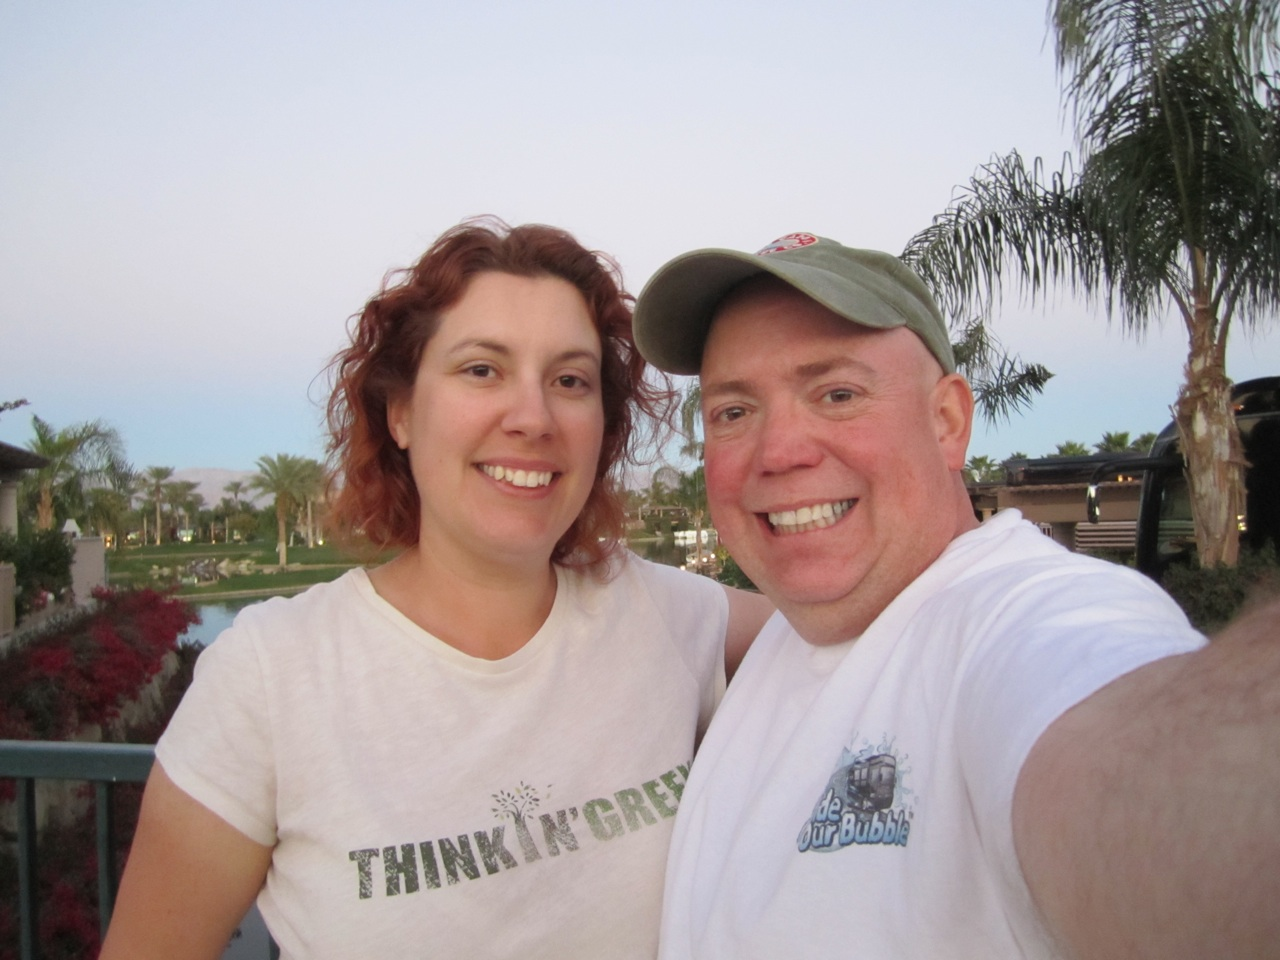 David & Brenda On An Evening Walk In The Resort